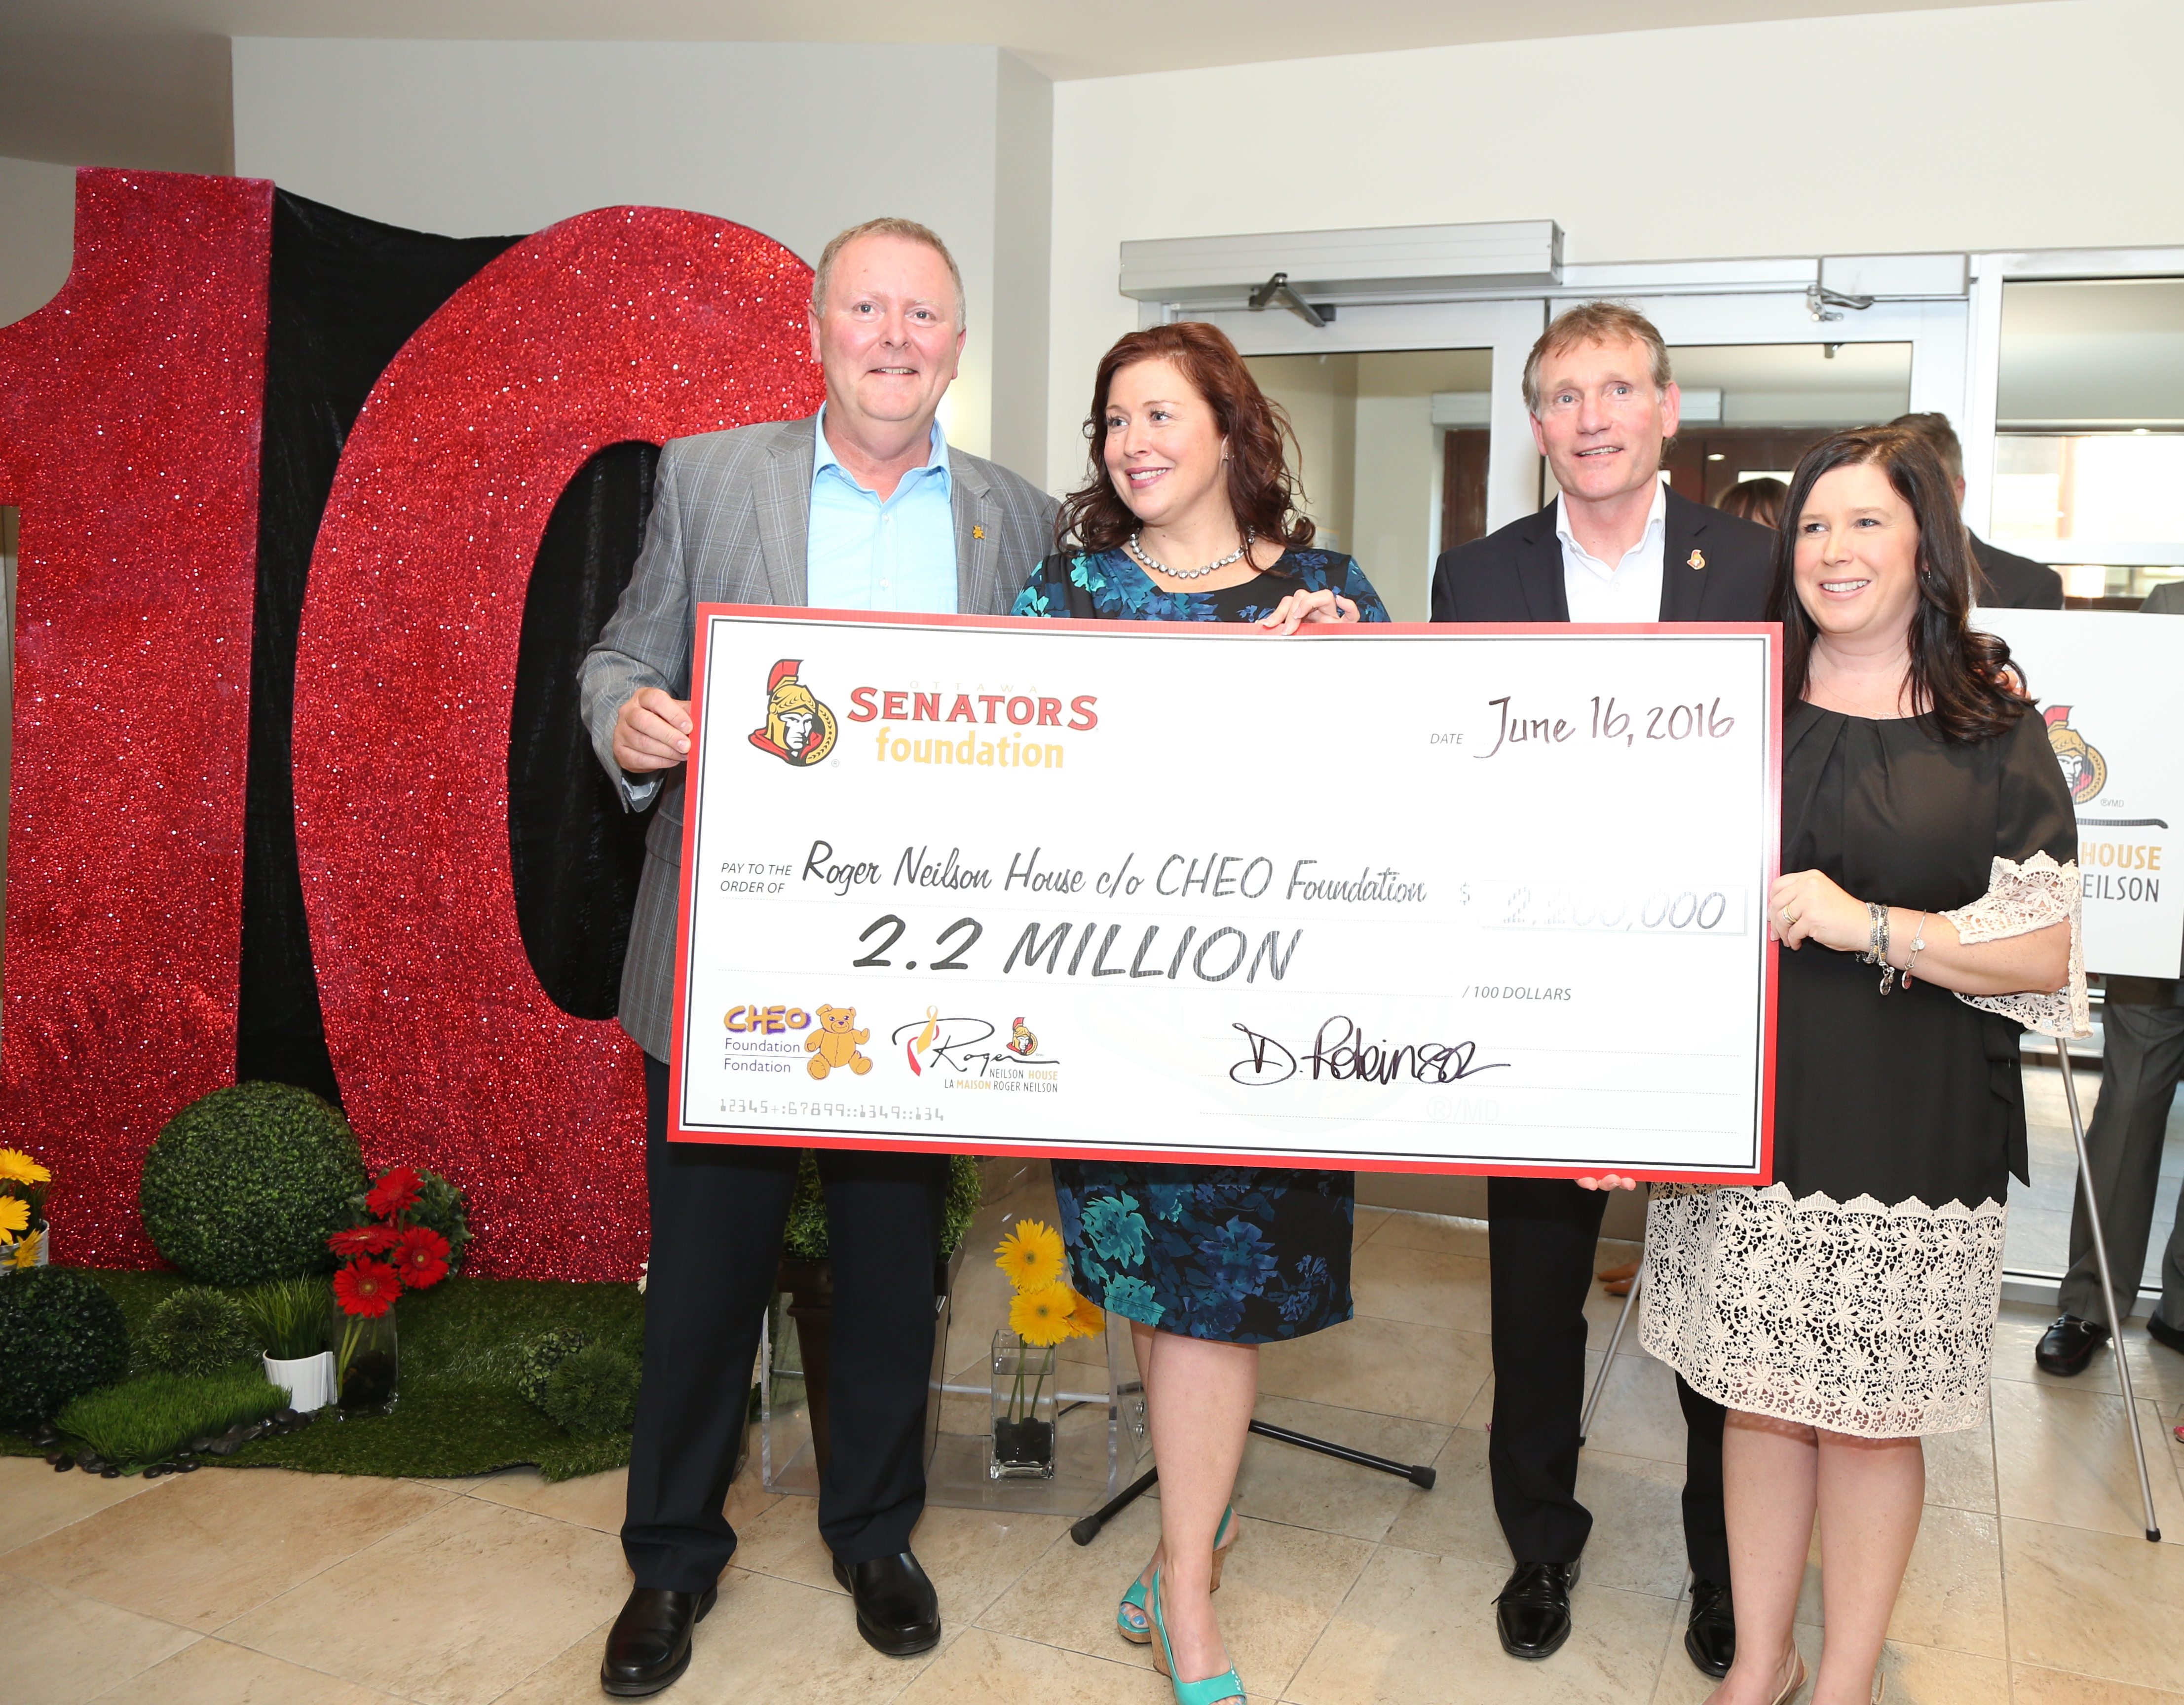 Kevin Keohane - President and CEO of CHEO Foundation, Danielle Robinson - President and CEO, Ottawa Senators Foundation, Cyril Leeder - President Ottawa Senators & Megan Wright - Executive Director, Roger Neilson House and Director, Palliative Care, CHEO